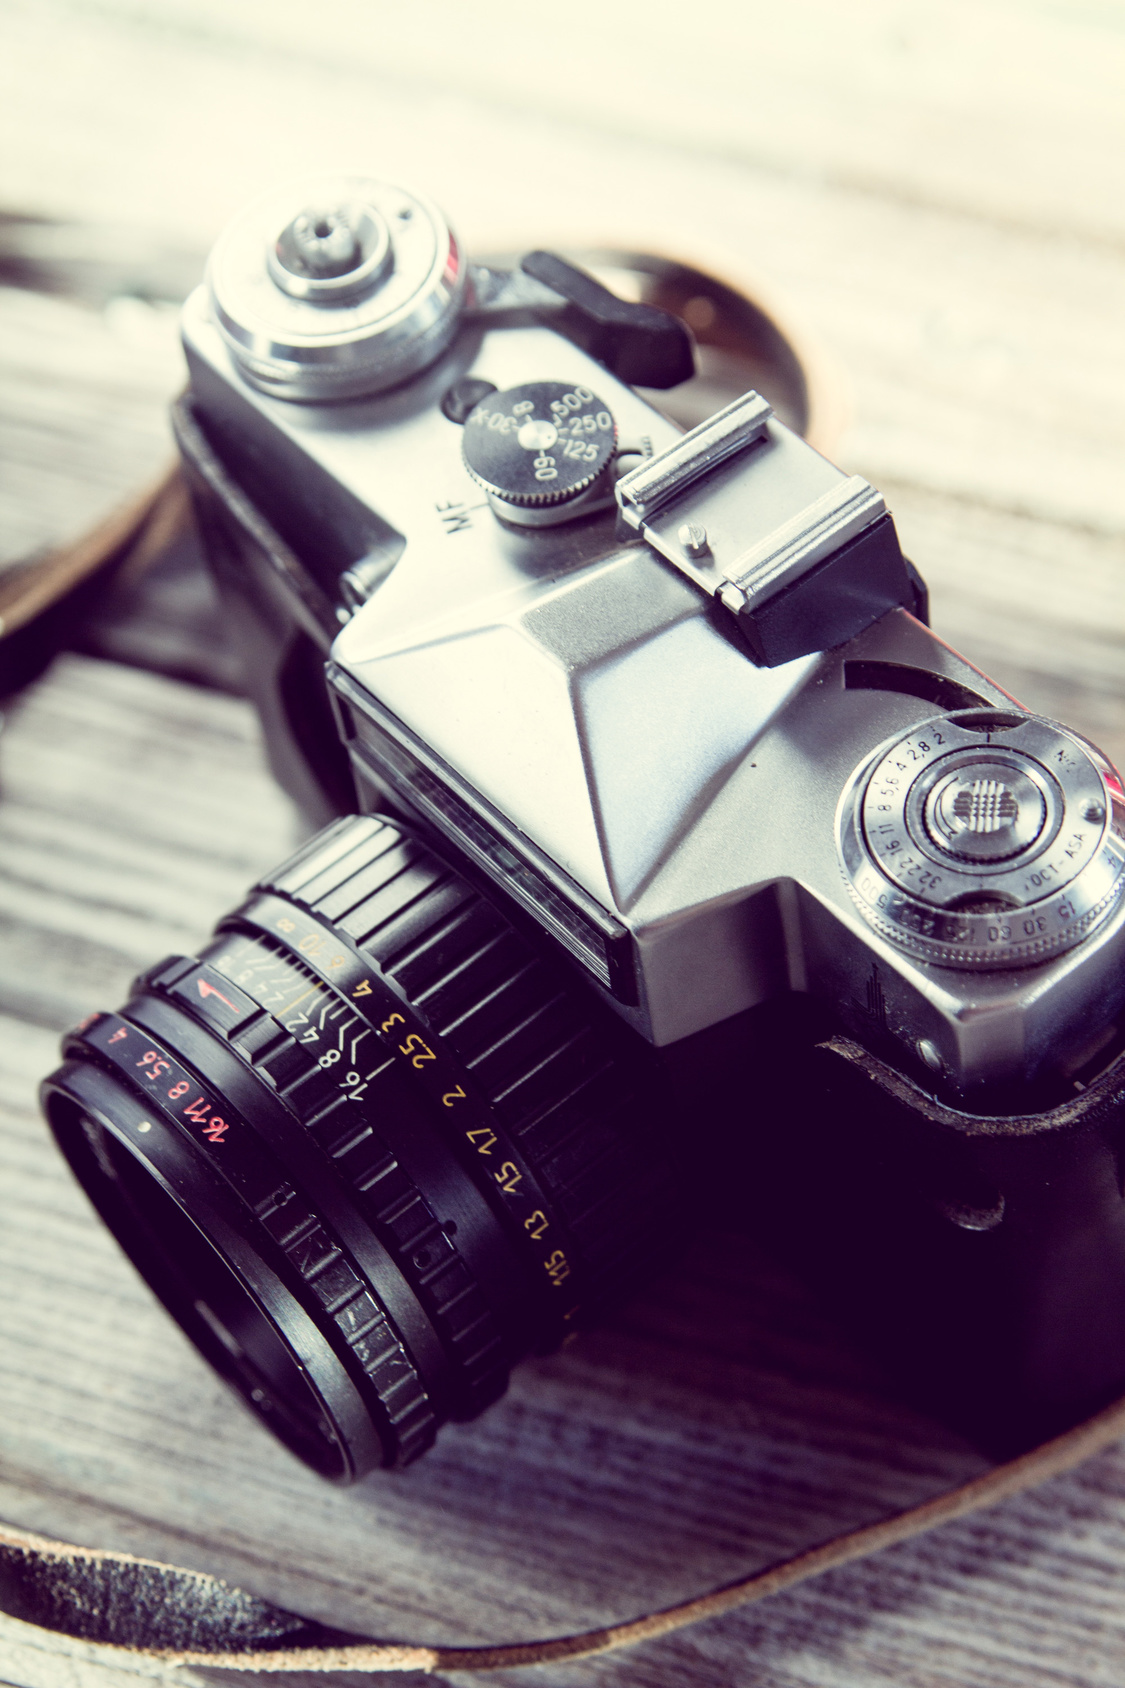 Tips for Aspiring Professional Photographers